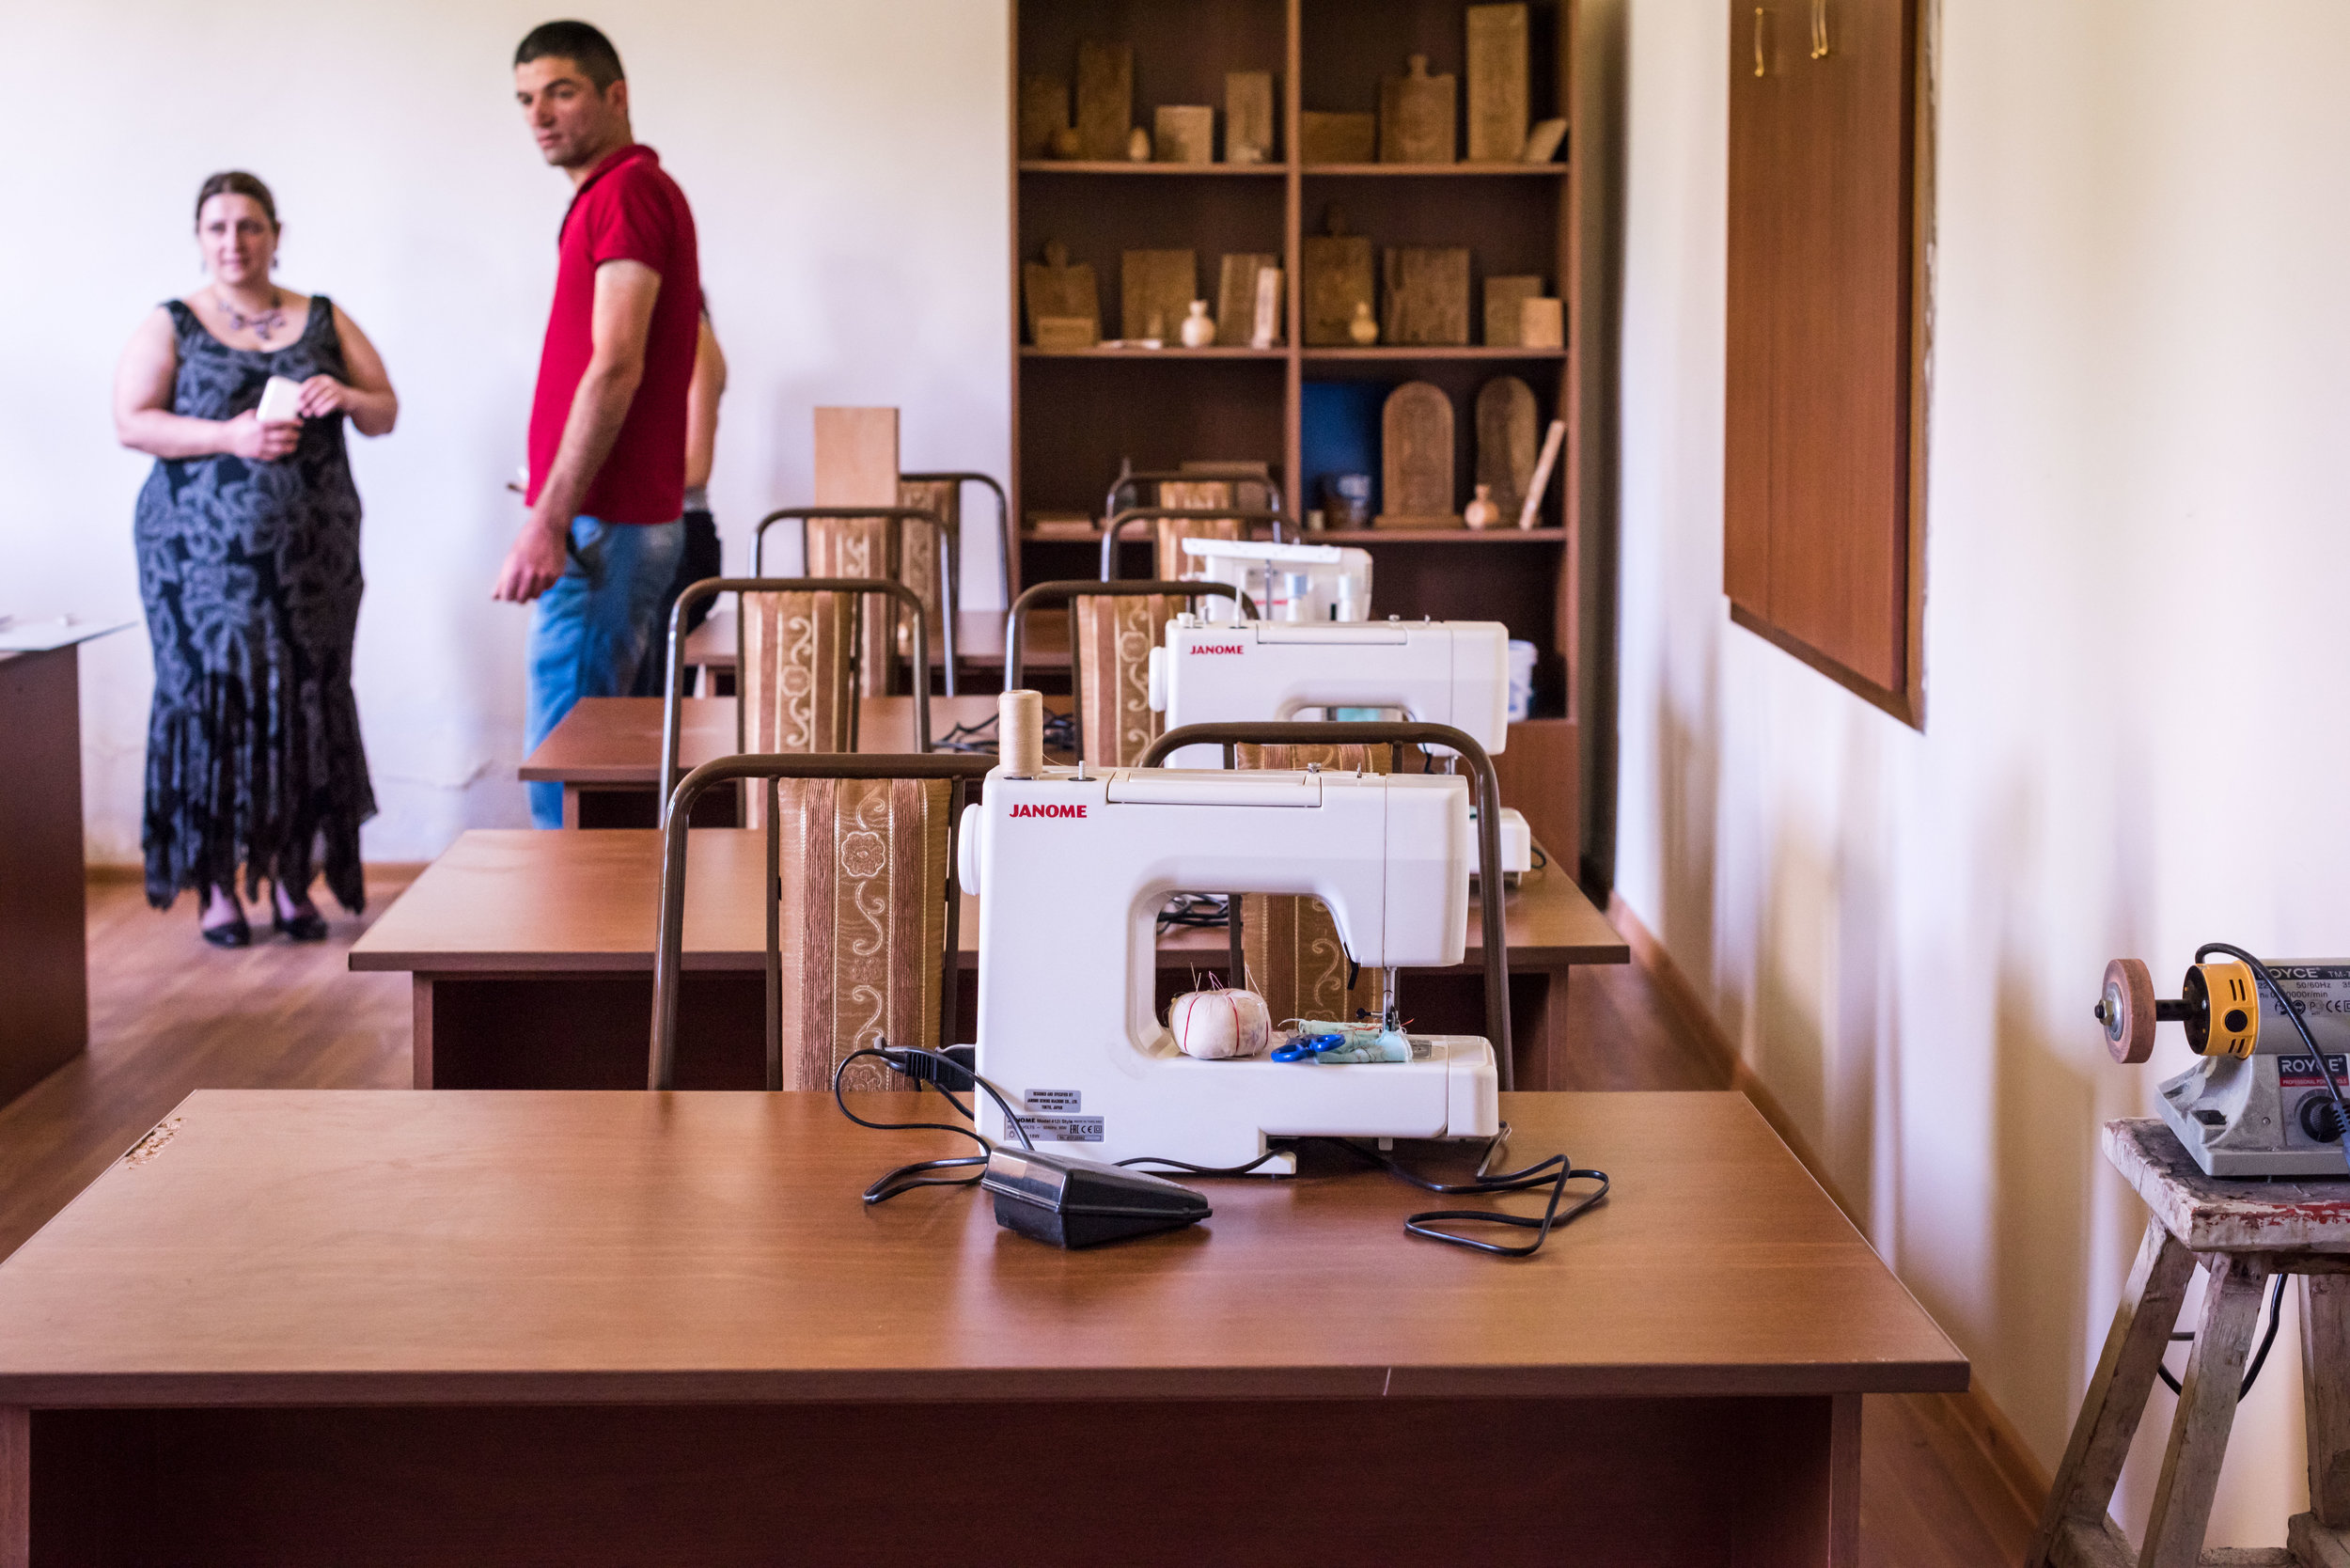 This is Chinchin's hobby group skills center where children learn woodcarving and sewing. Lusine Grigoryan discusses the progress of the center with Sarkis, evidenced by the lovely carved items displayed on the shelves.